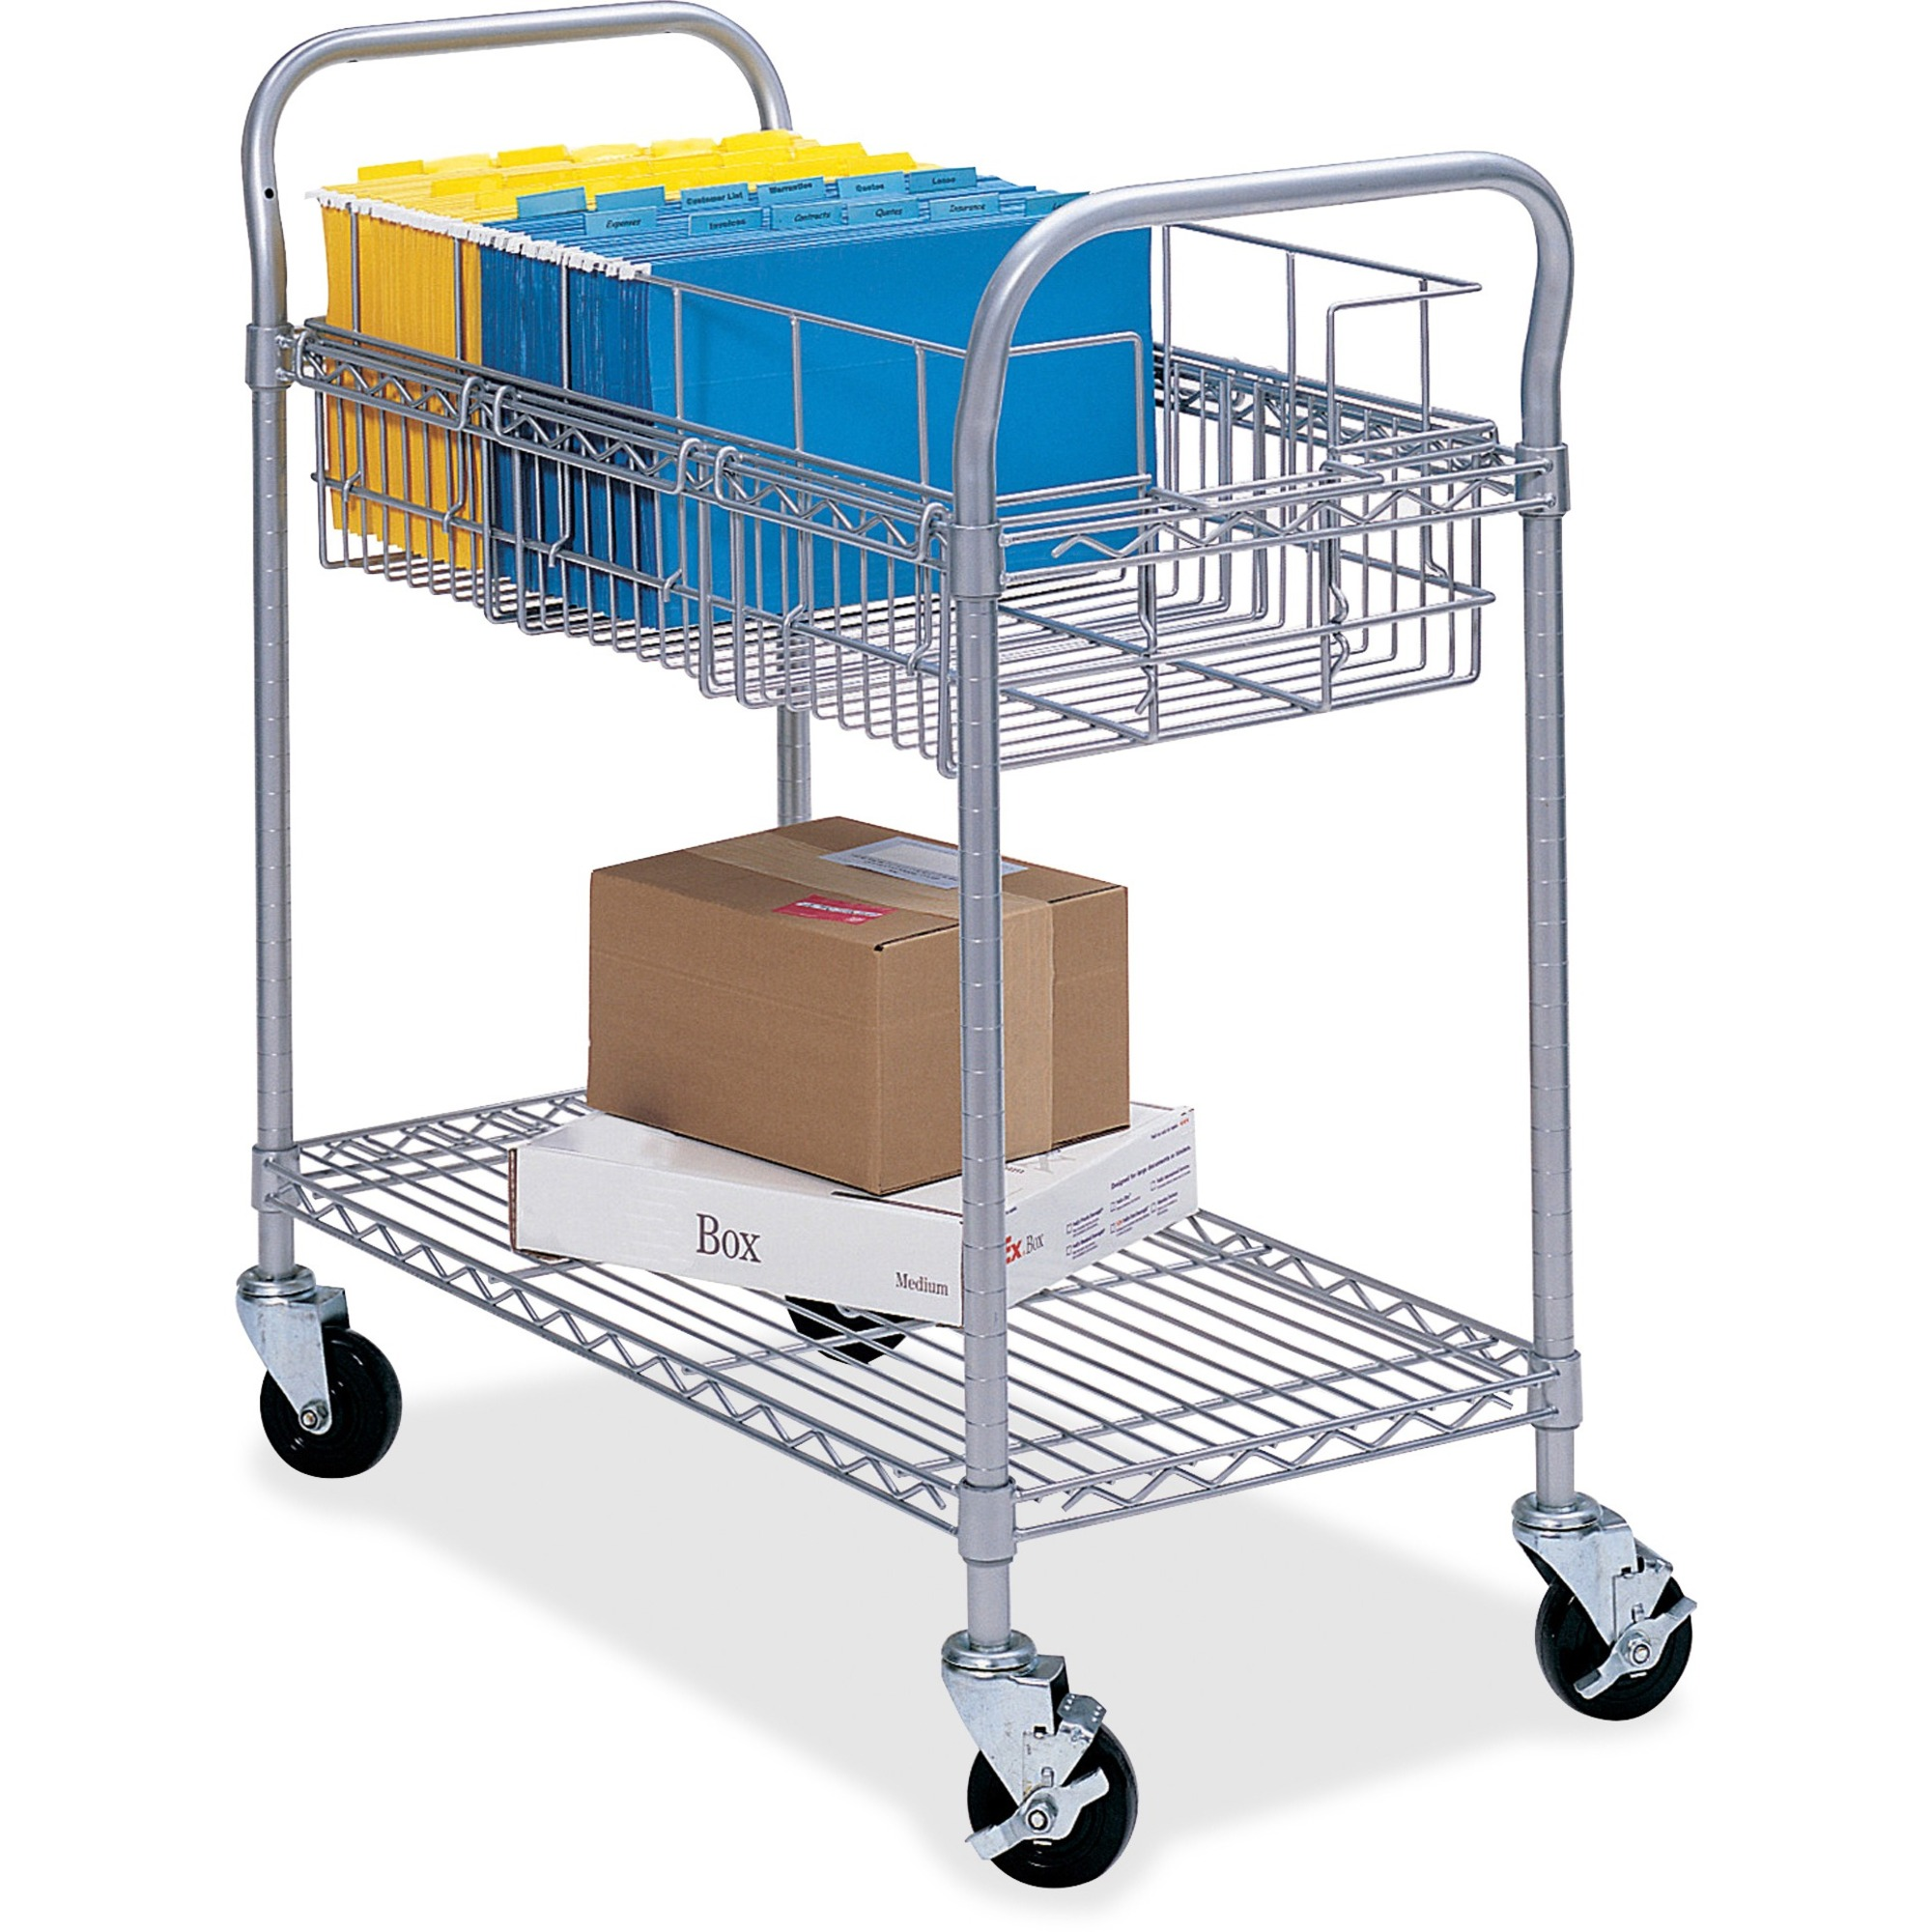 Safco Wire Mail Cart - Madill - The Office Company